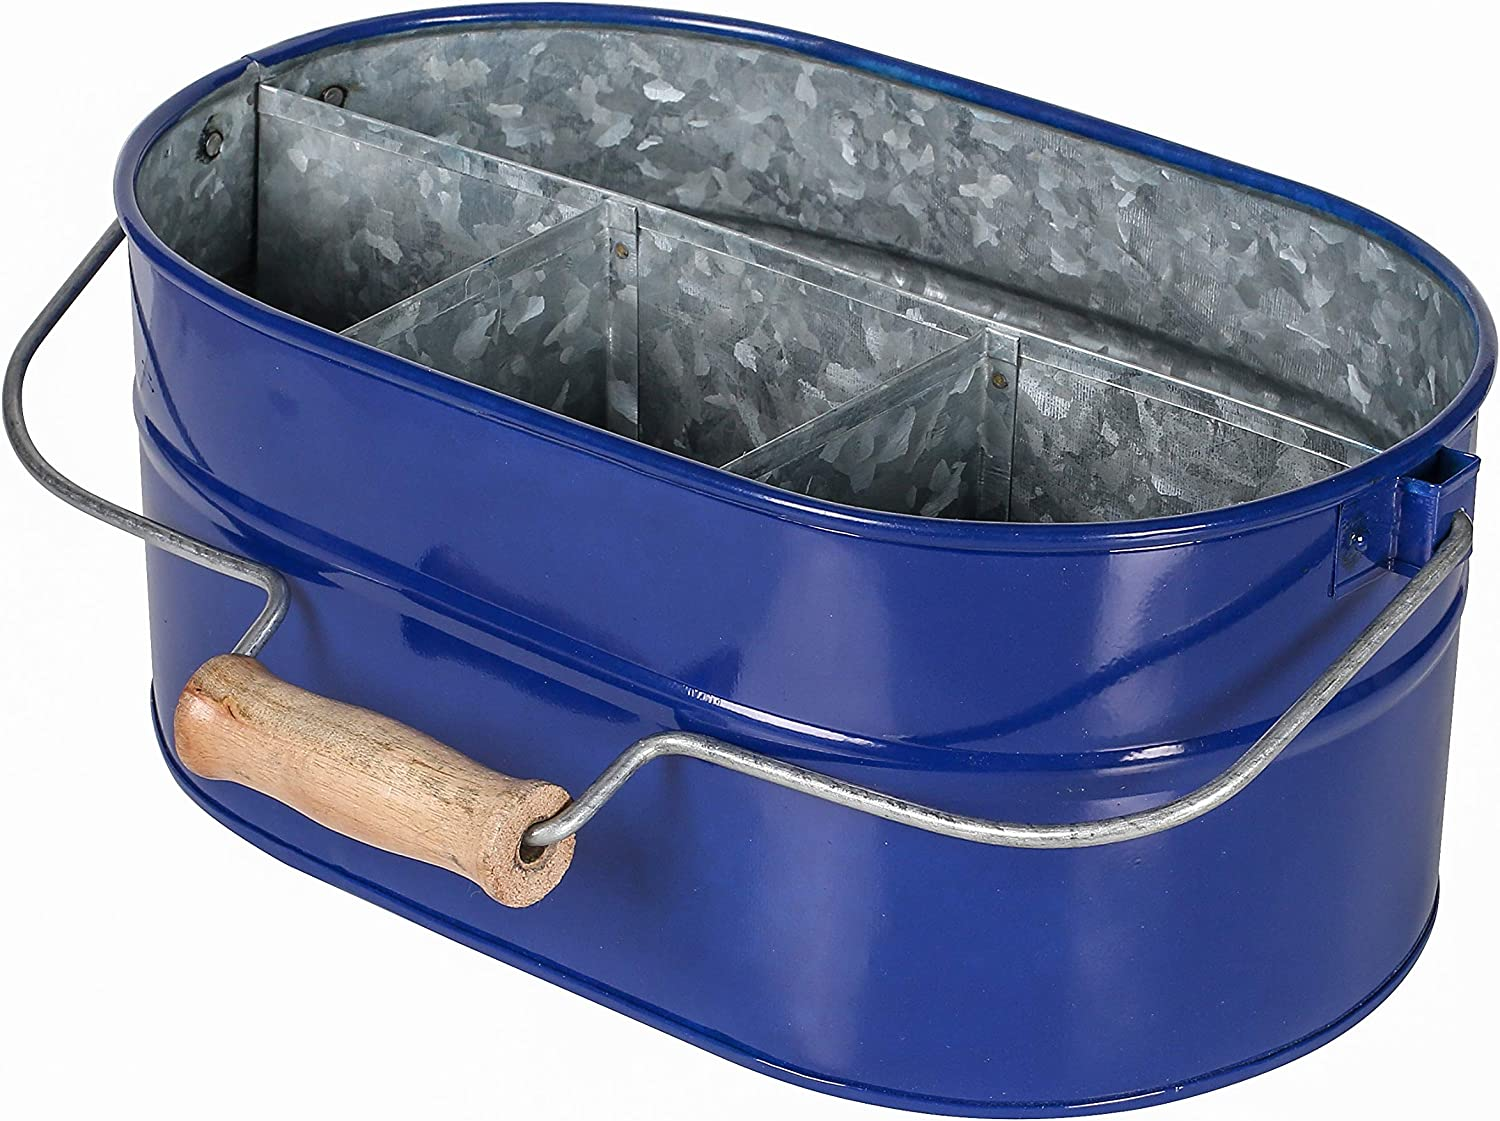 Farmhouse Utensil Caddy -All Serveware - Galvanized Metal Organizer for Kitchen Counter,Metal Caddy, Picnic Caddy -Wooden Handle Indoor/Outdoor Storage For Flatware, Condiments, Party Cutlery - BLUE